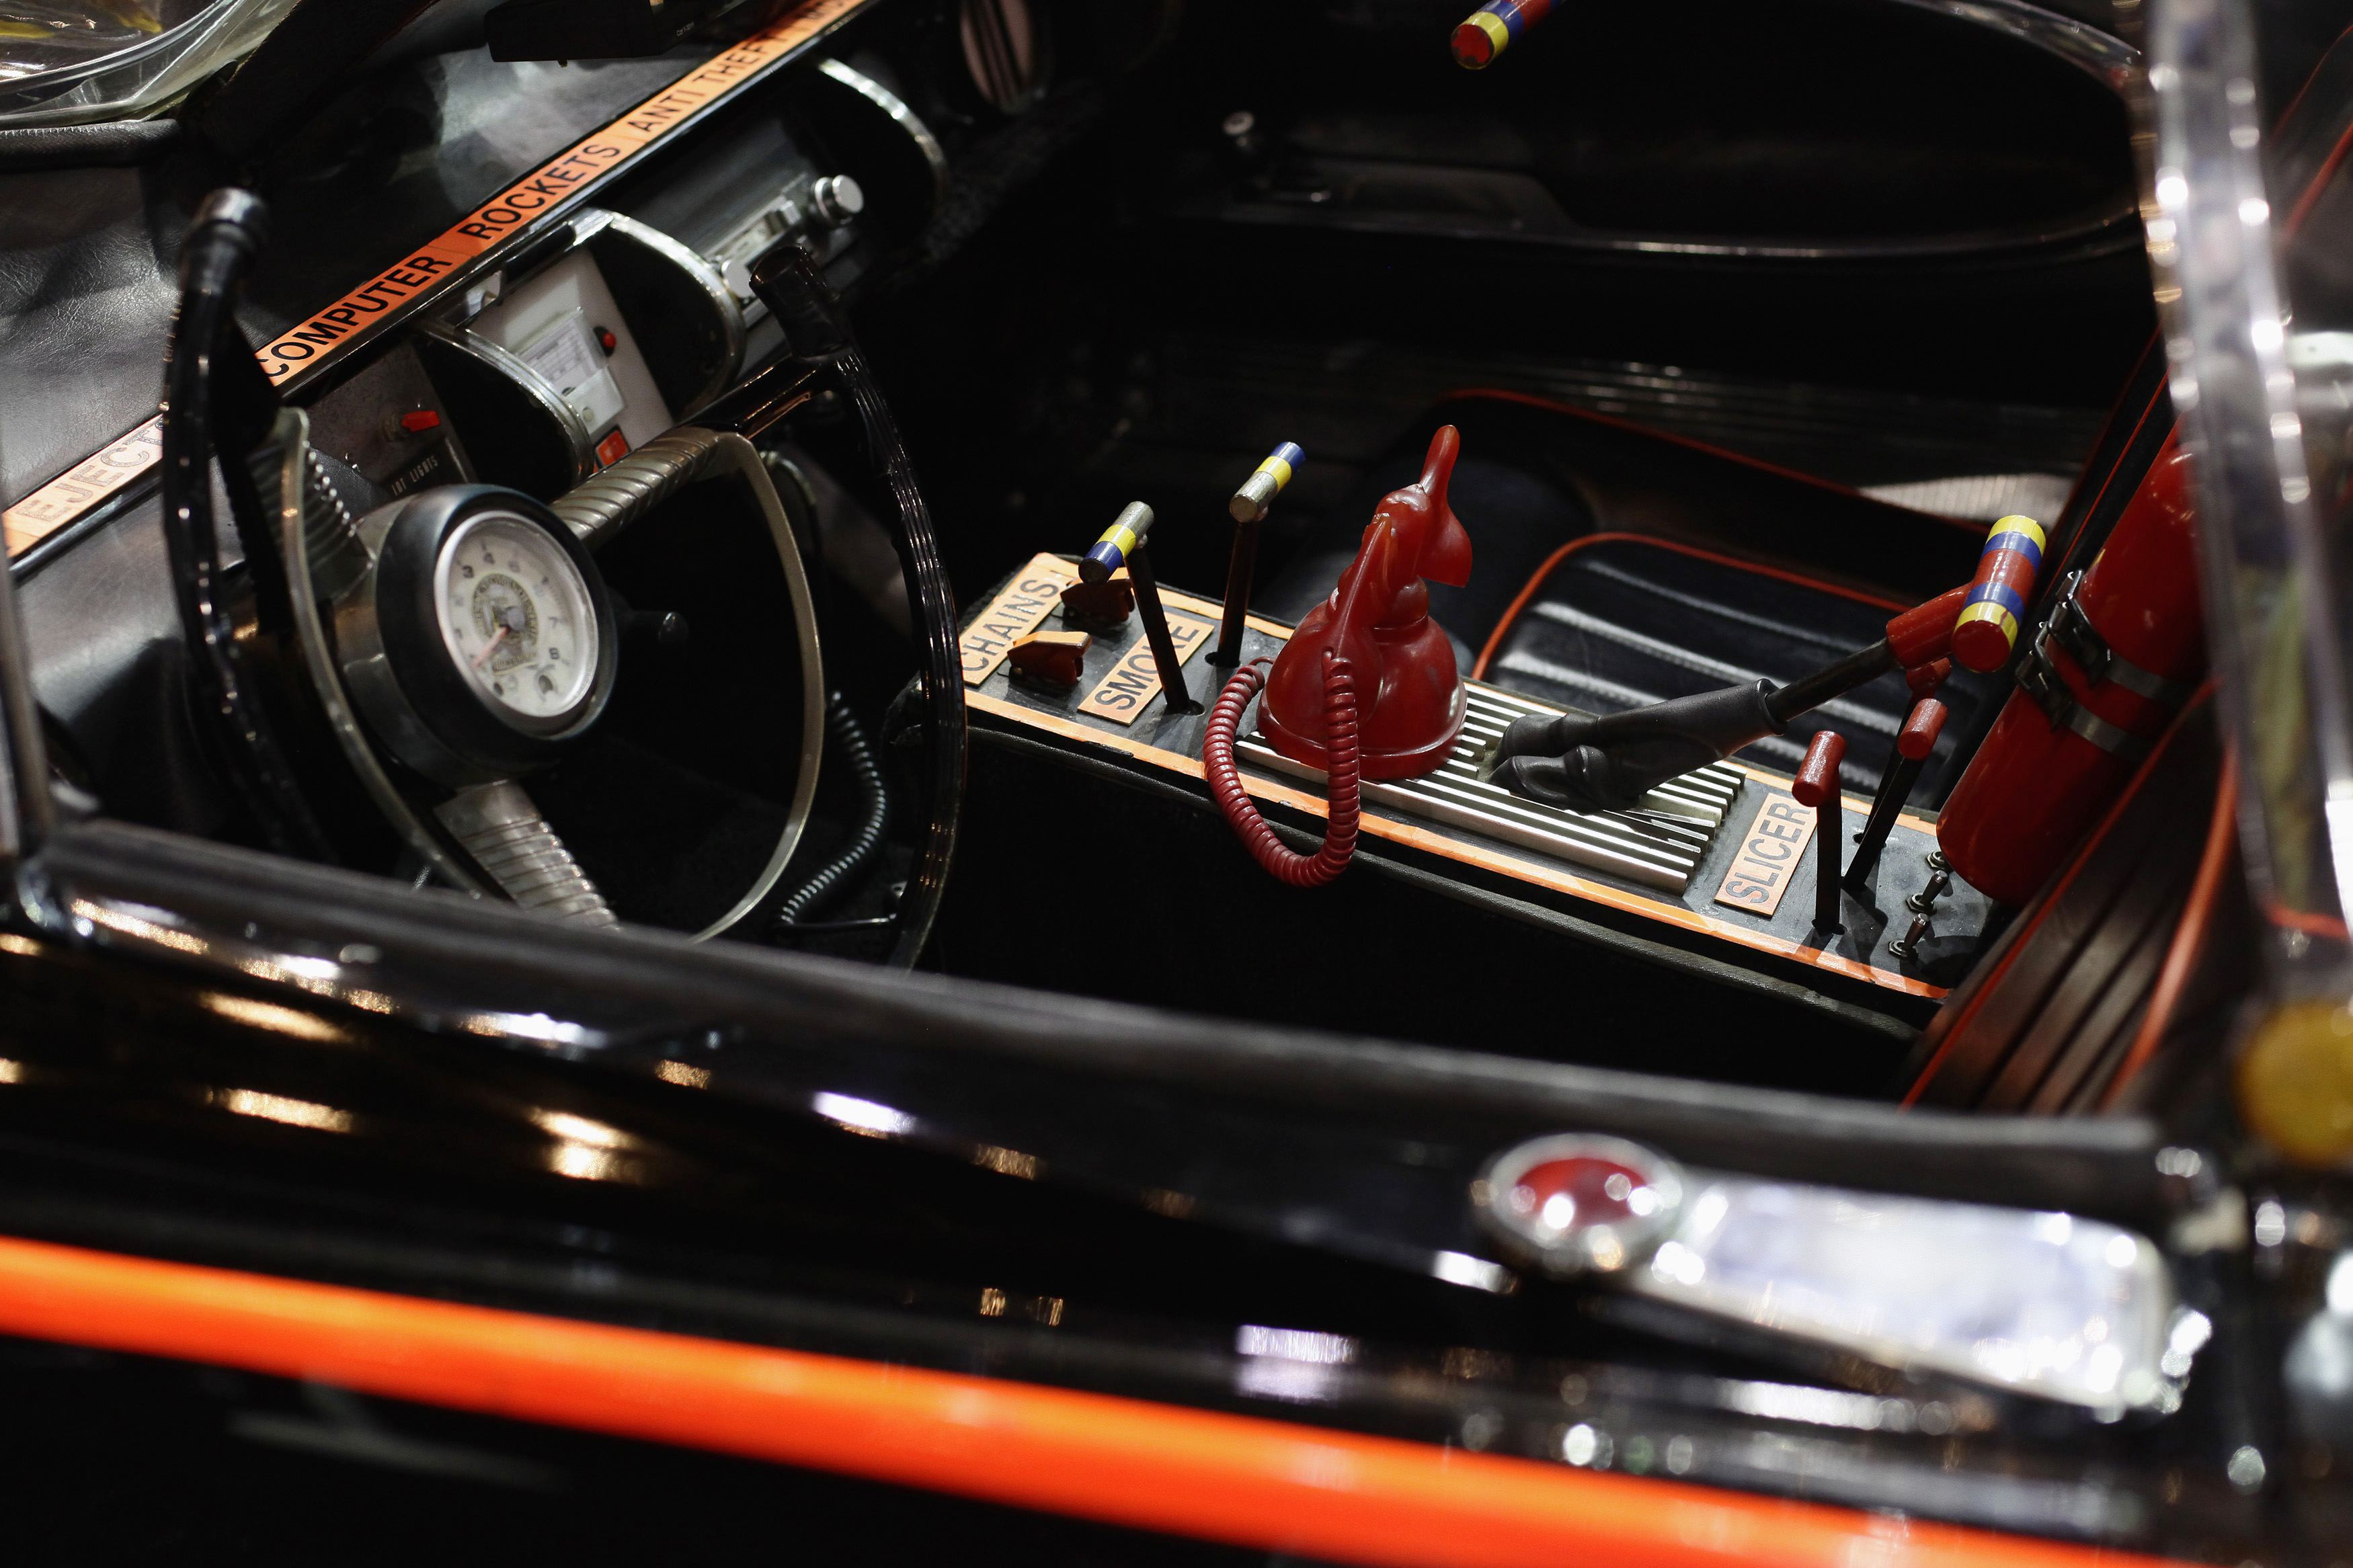 The interior of the original Batmobile is displayed during the Barrett-Jackson collectors car auction in Scottsdale, Arizona January 19, 2013. The vehicle sold for $4,200,000, according to the auction company. REUTERS/Joshua Lott (UNITED STATES - Tags: ENTERTAINMENT SOCIETY BUSINESS TRANSPORT)